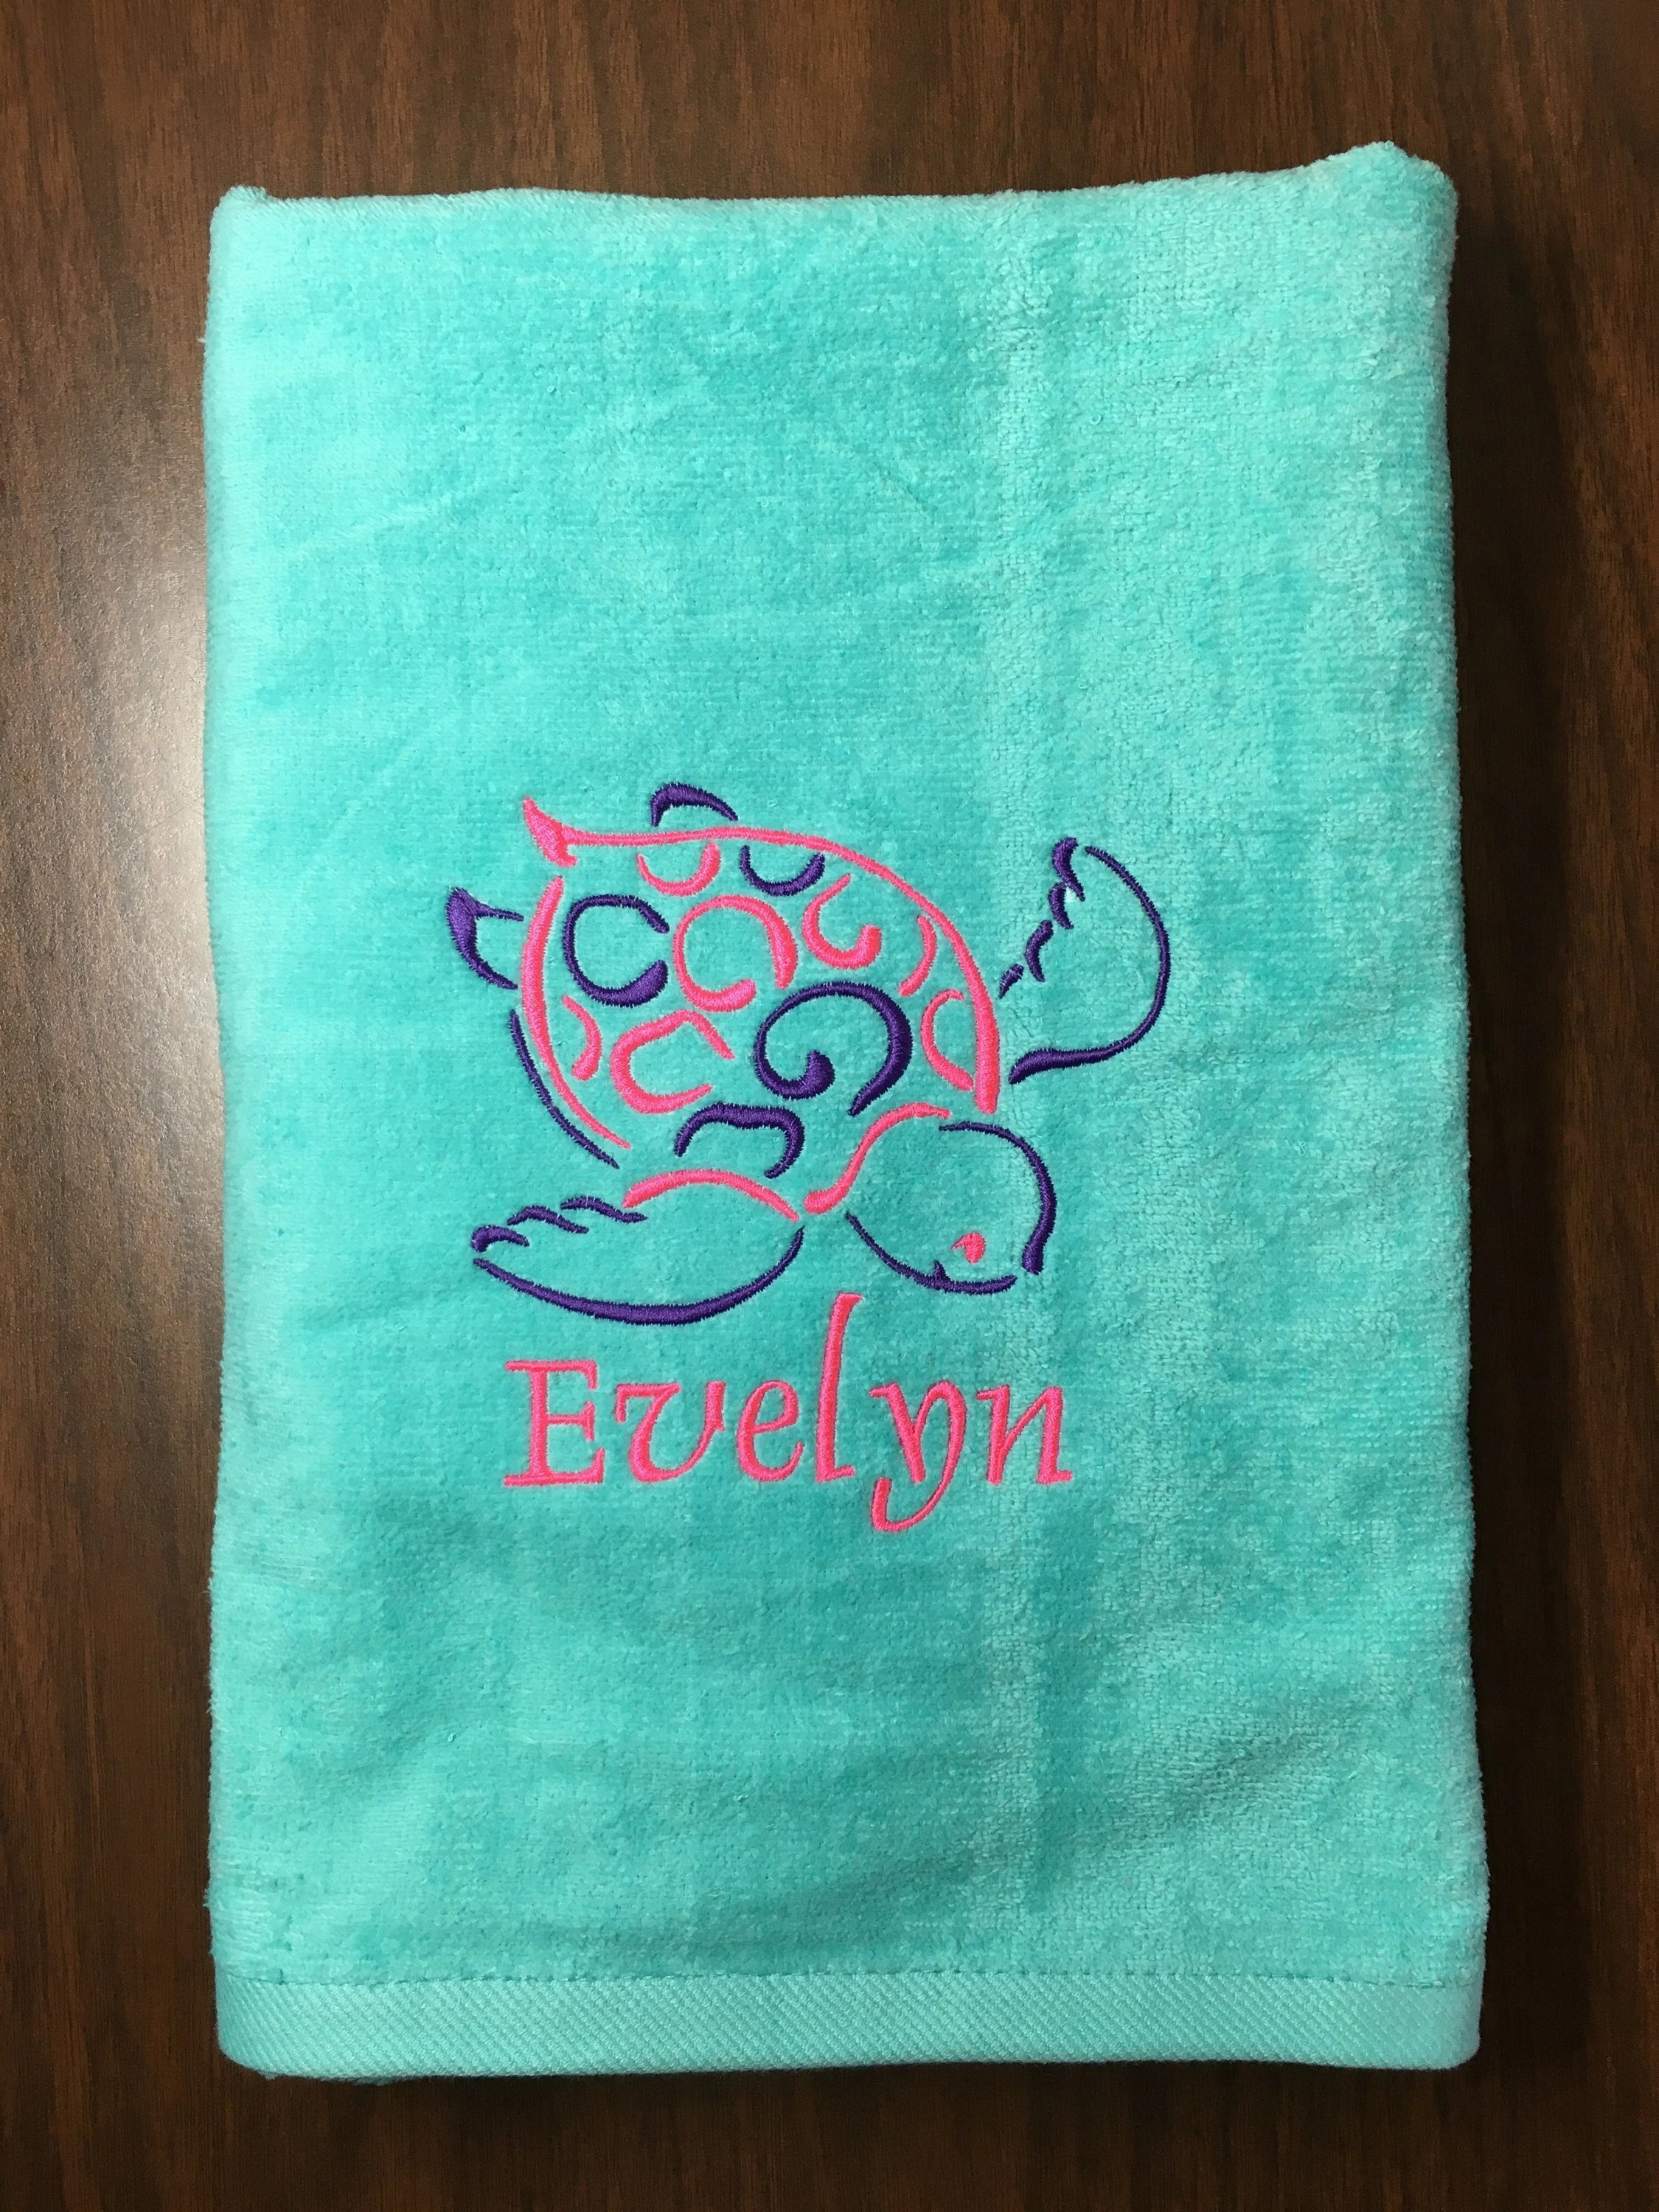 Teal Beach Personalized Beach Towels Wedding Gift Personalized Beach Towels Beach X Aqua Personalized Beach Towels Babies Kids Kids Aqua Personalized Beach Towels inspiration Personalized Beach Towels